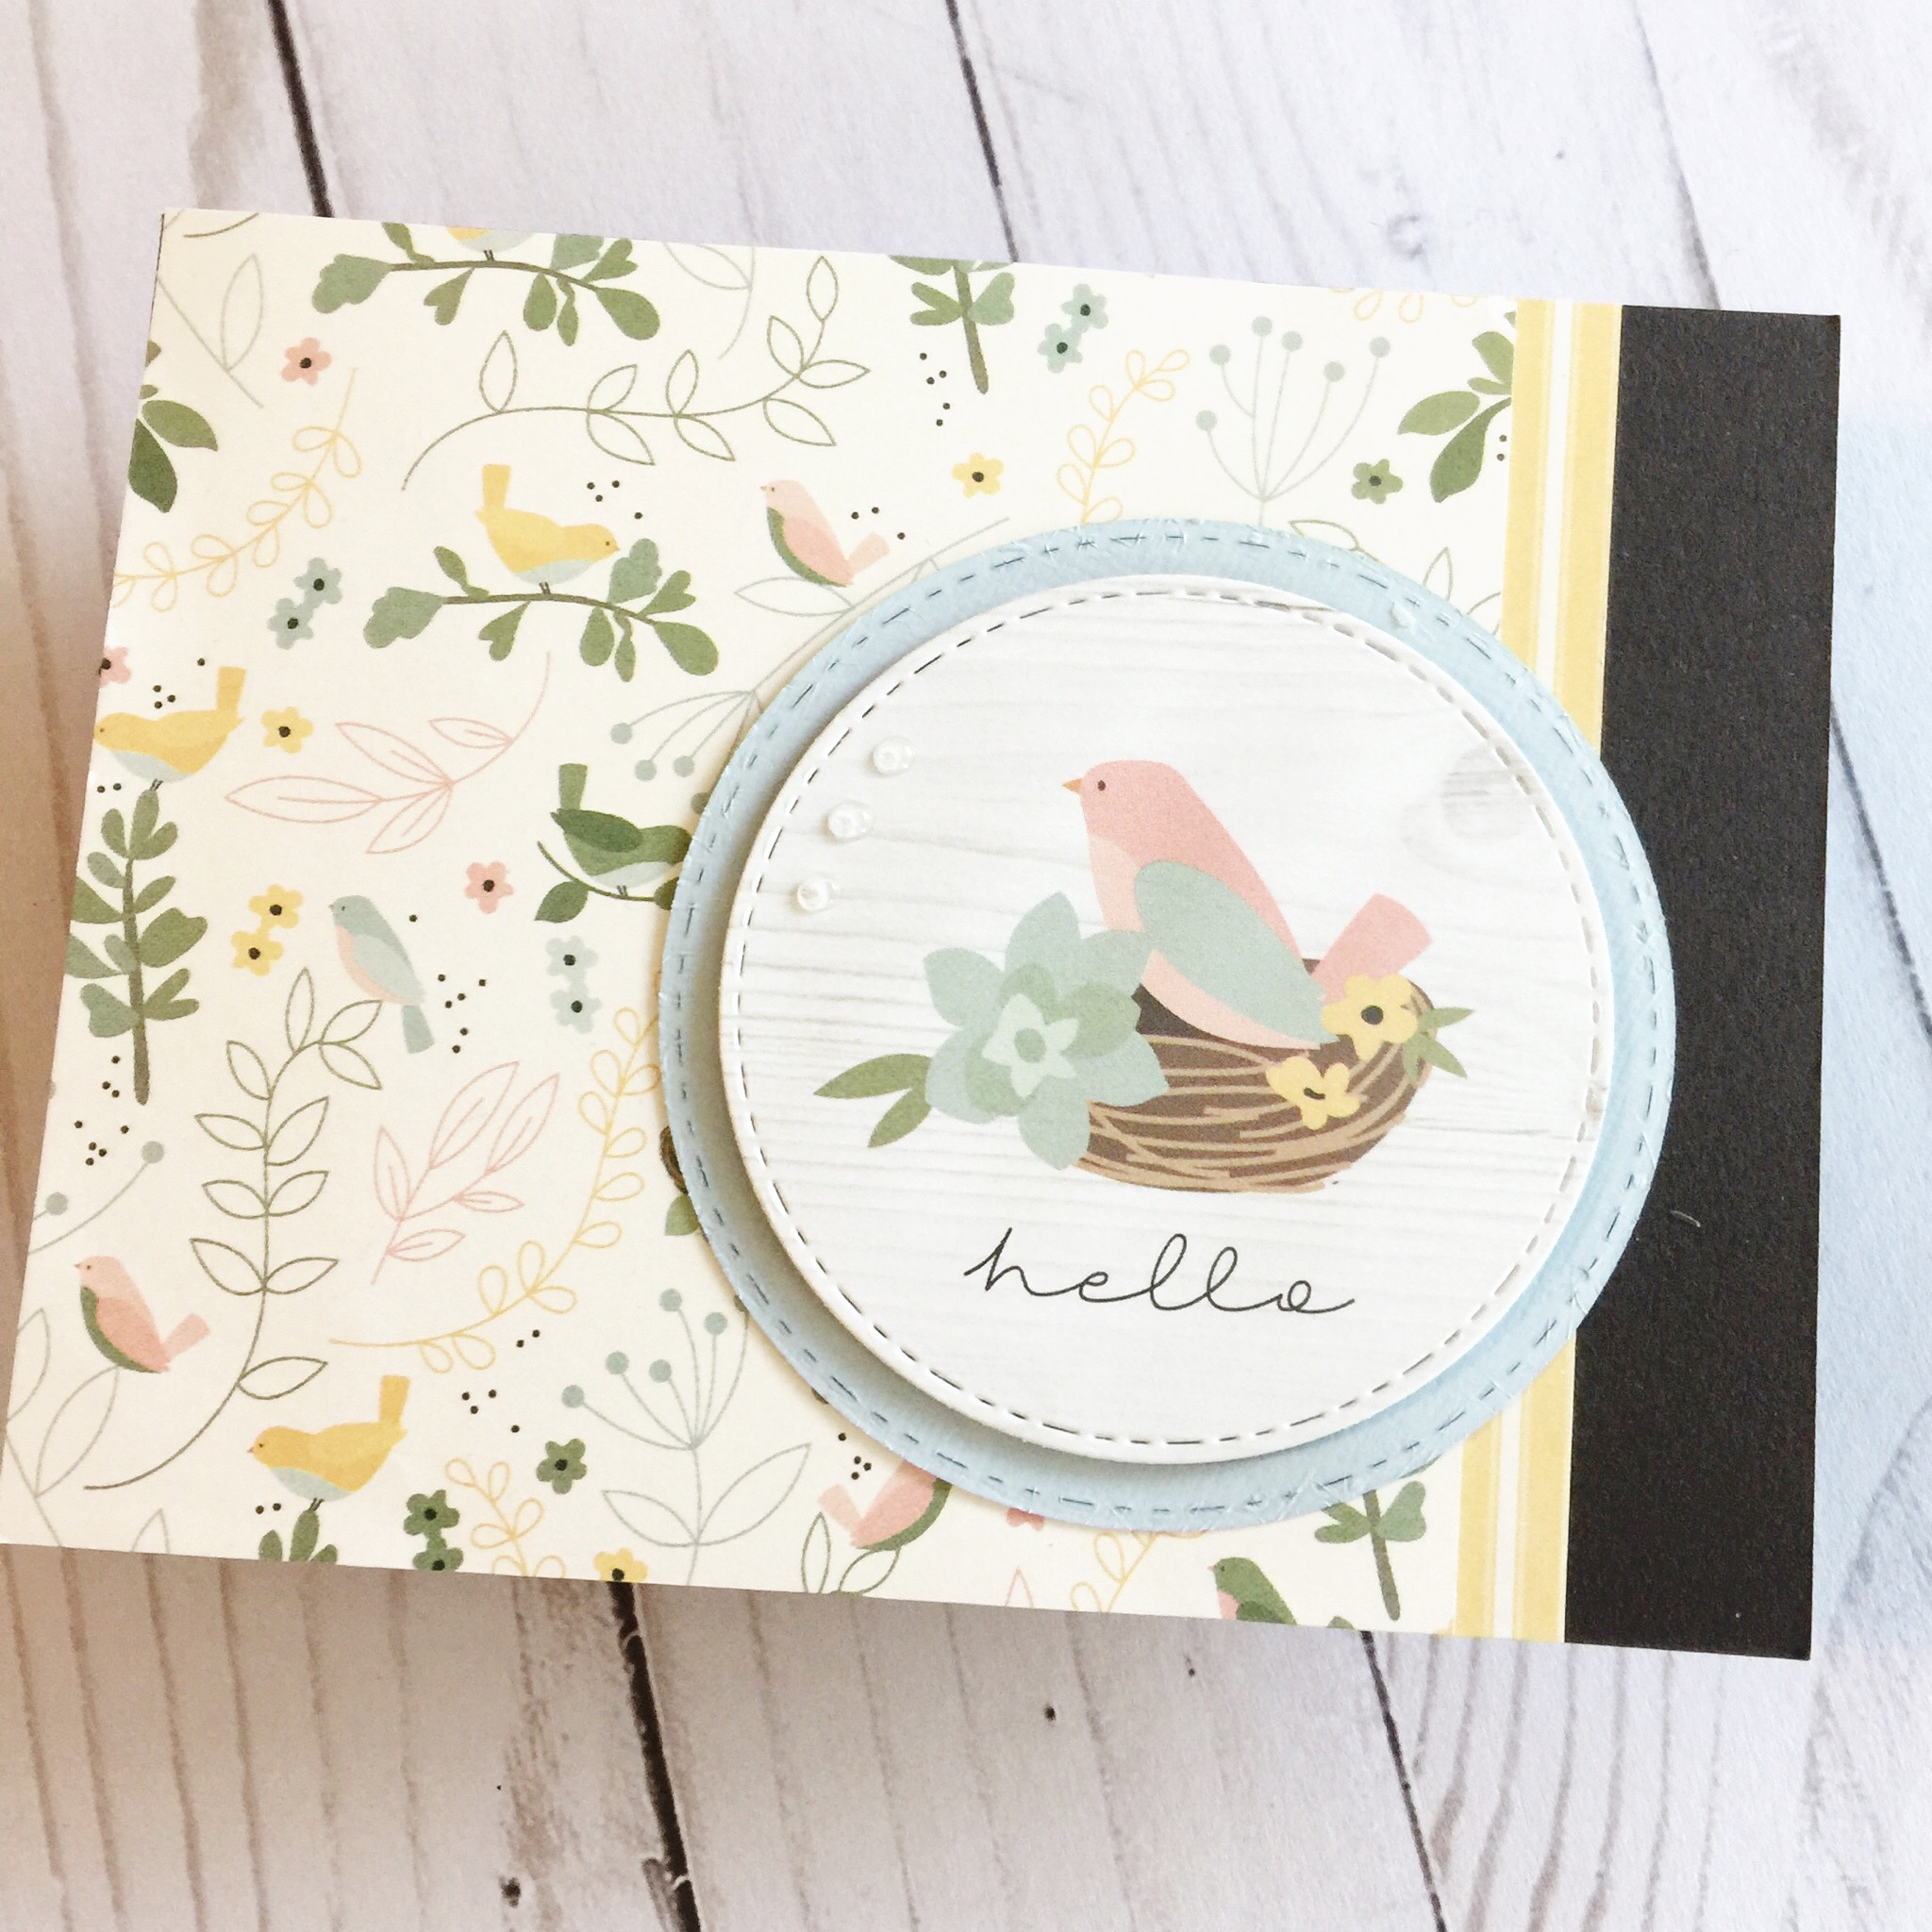 Simon Says Stamp - Hello Darling | April 2019 Card Kit of the Month